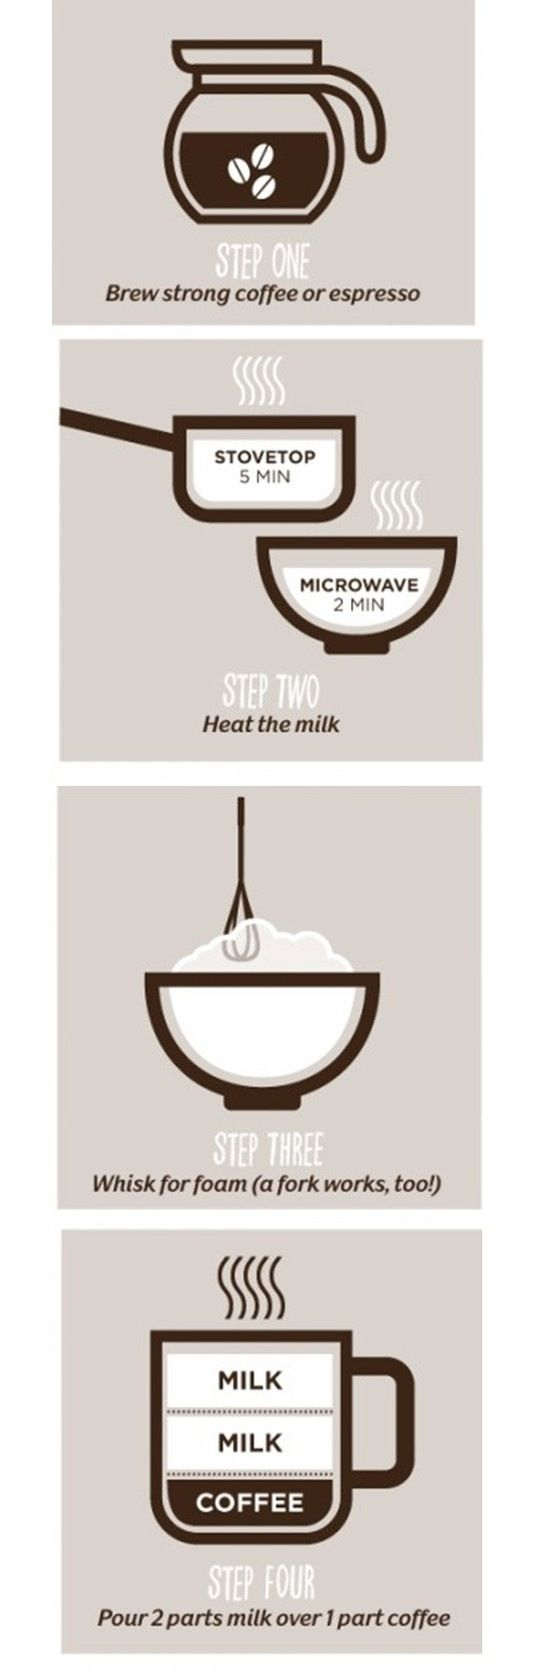 How to make a latte from home! So easy, even I could do it!